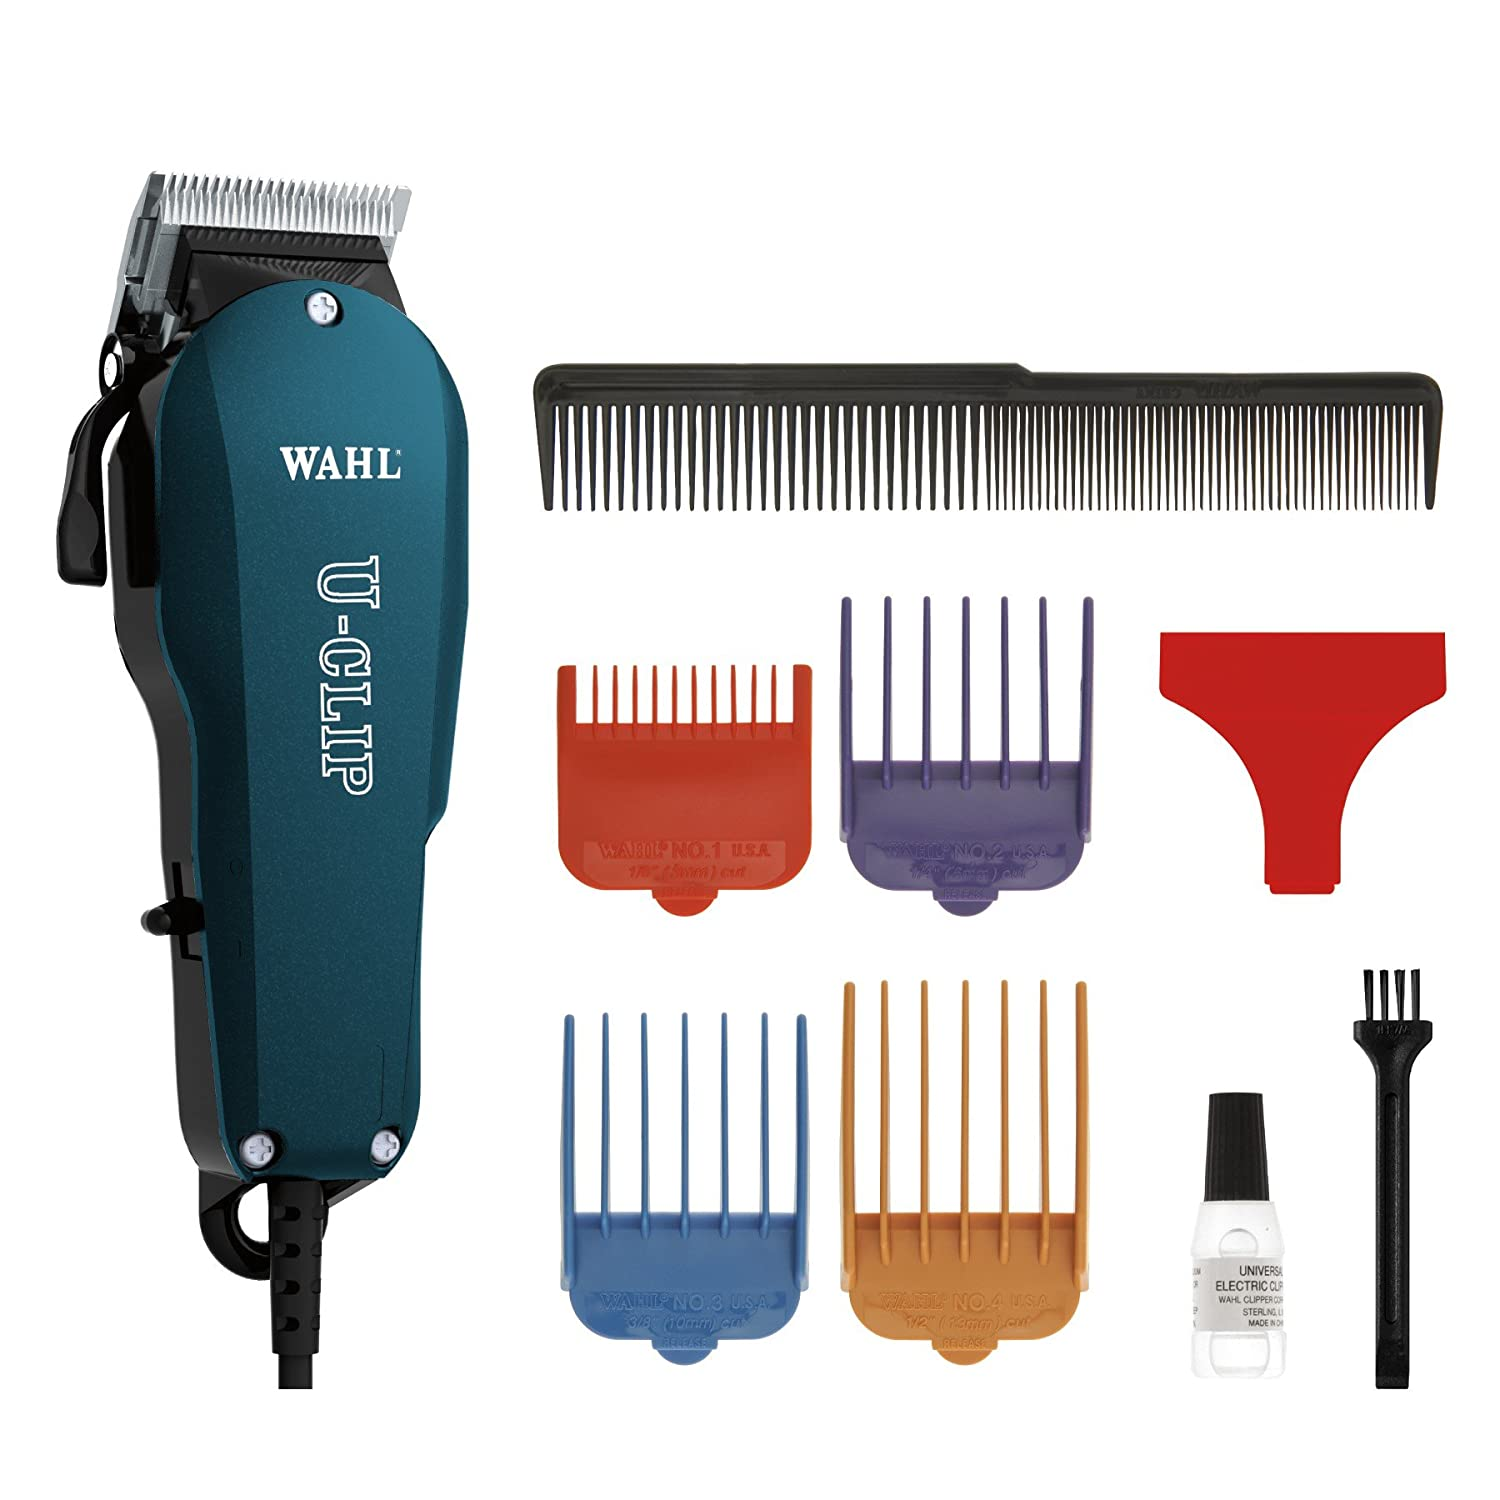 Wahl Professional Animal U-Clip Pet Clipper Trimmer Grooming Kit for Dogs Cats and Pets Hair Fur  9484-400